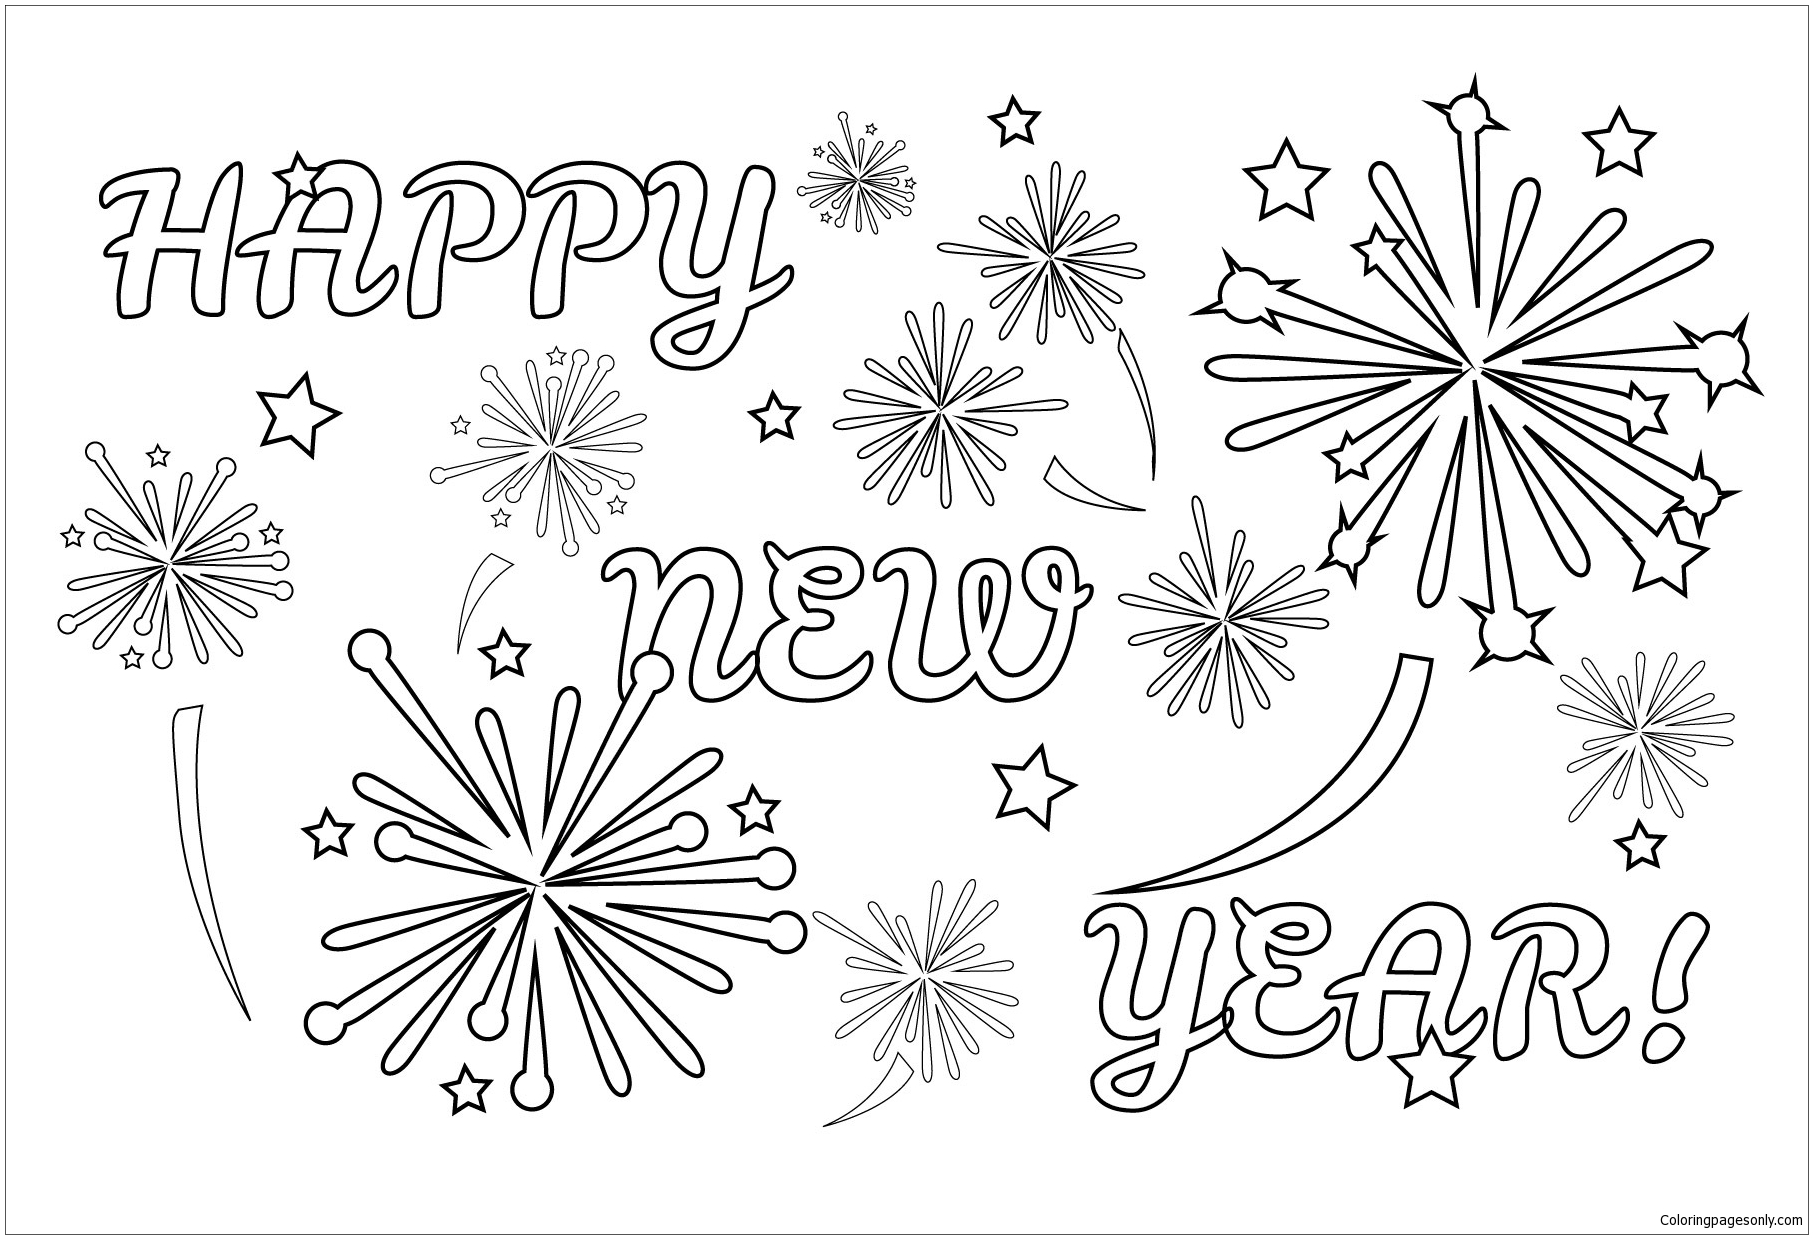 chinese fireworks coloring page - Fireworks Coloring Pages